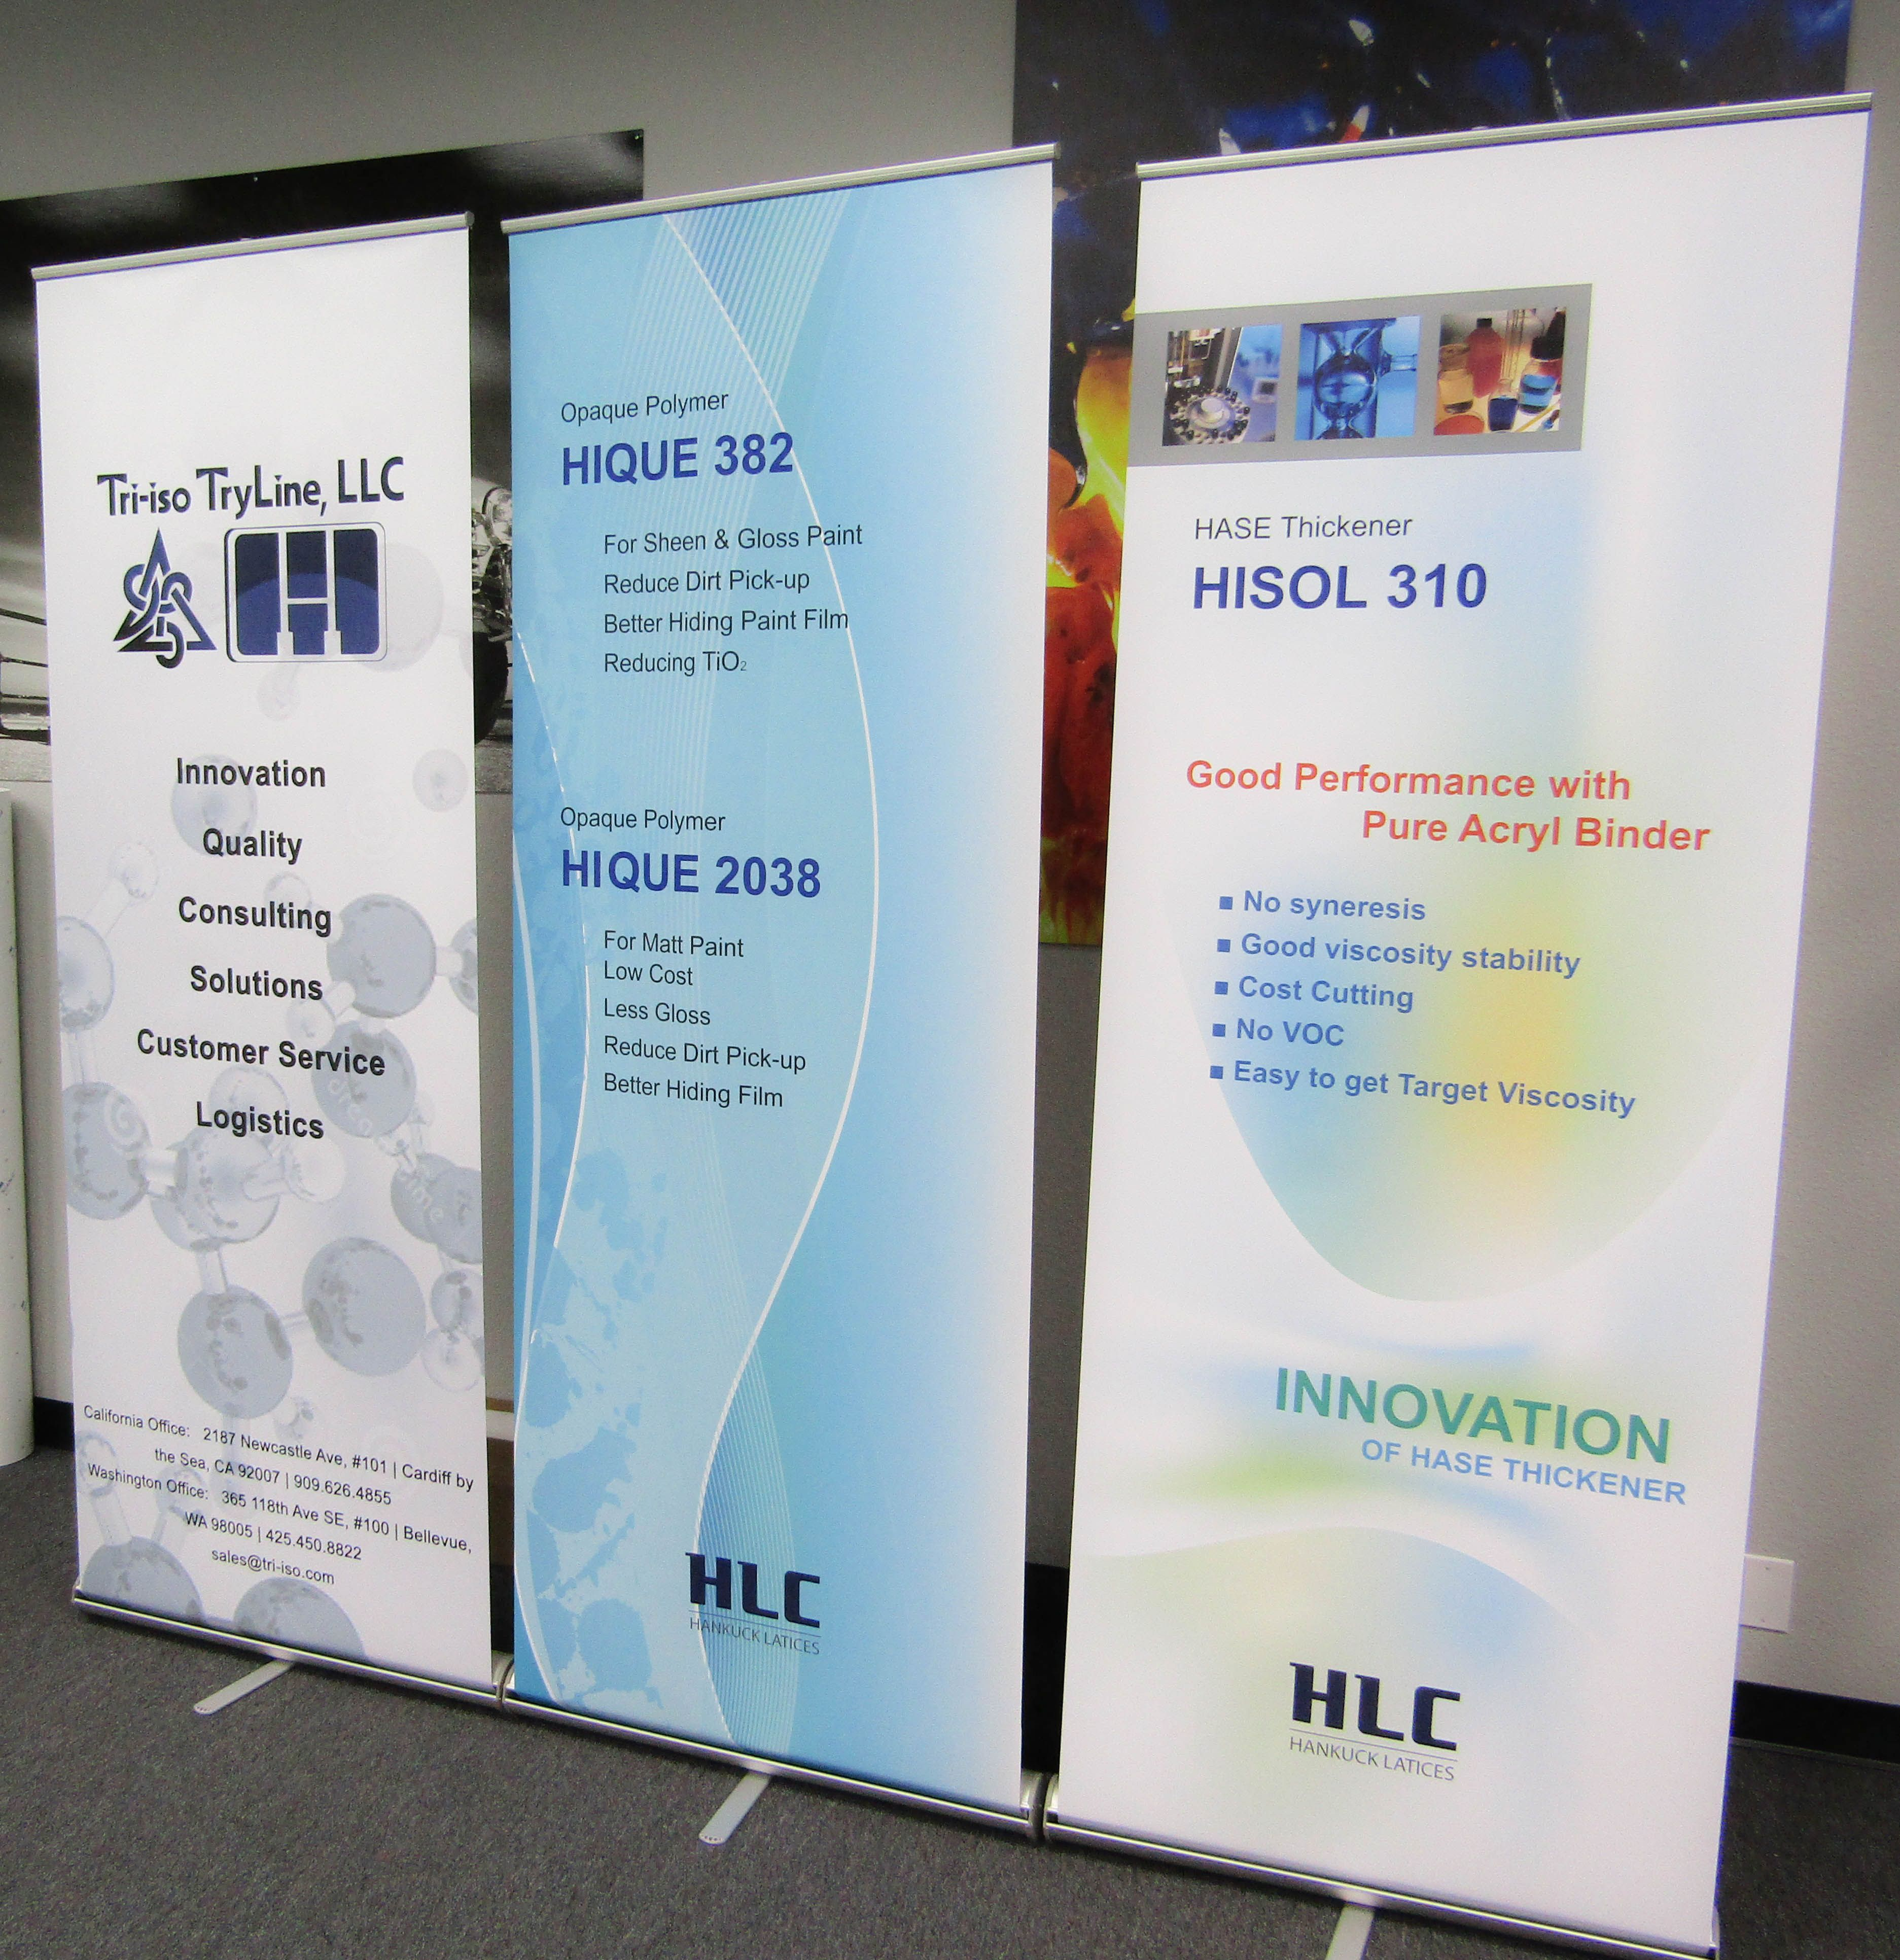 Retractable Banners Are A Perfect Solution For Trade Shows They